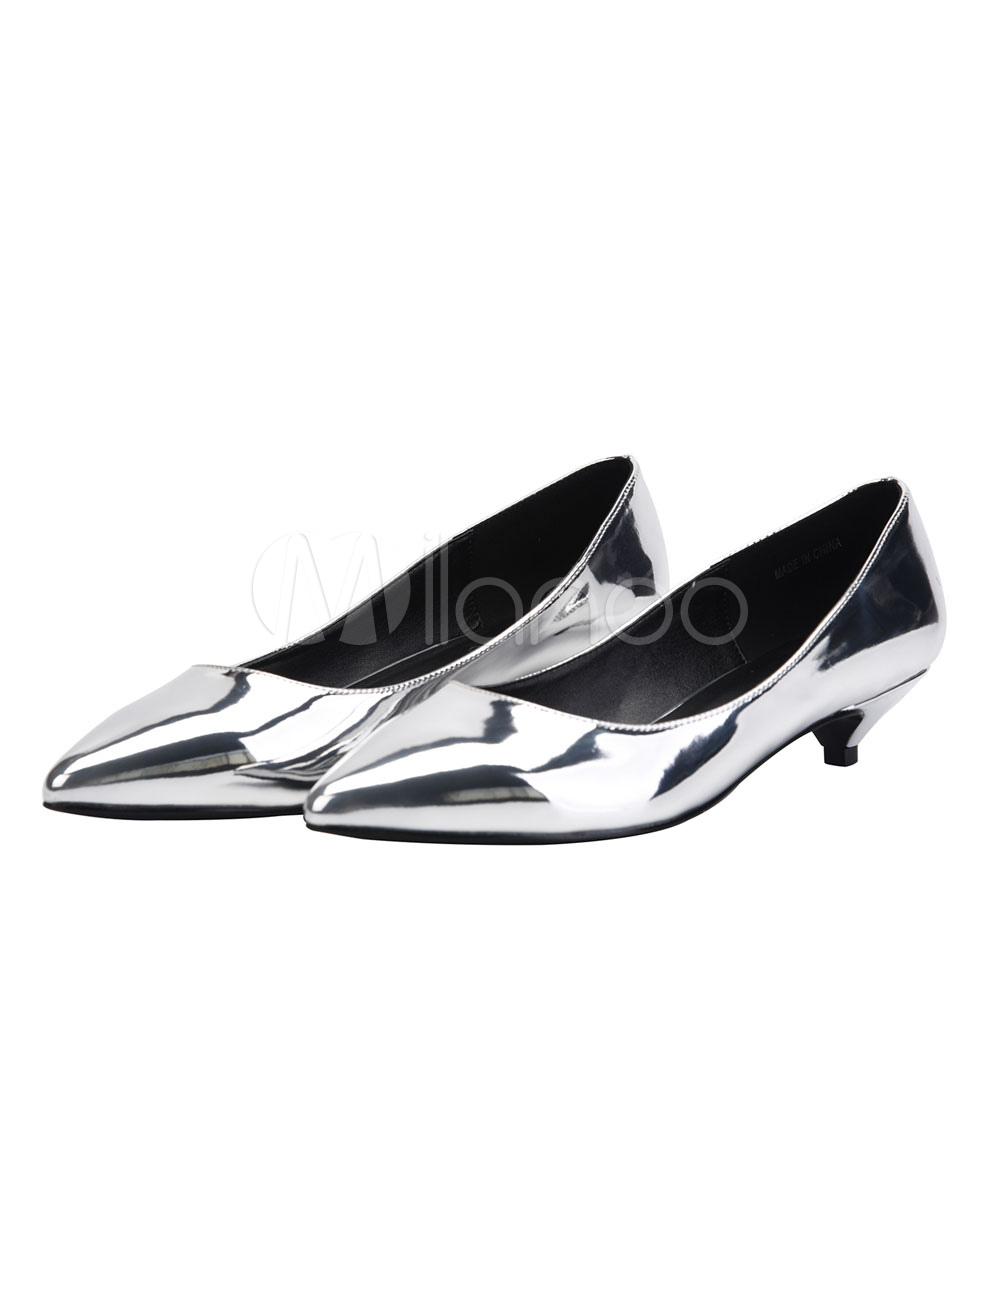 Silver Dress Shoes Kitten Heel Pumps Plus Size Pointed Toe Slip On Shoes